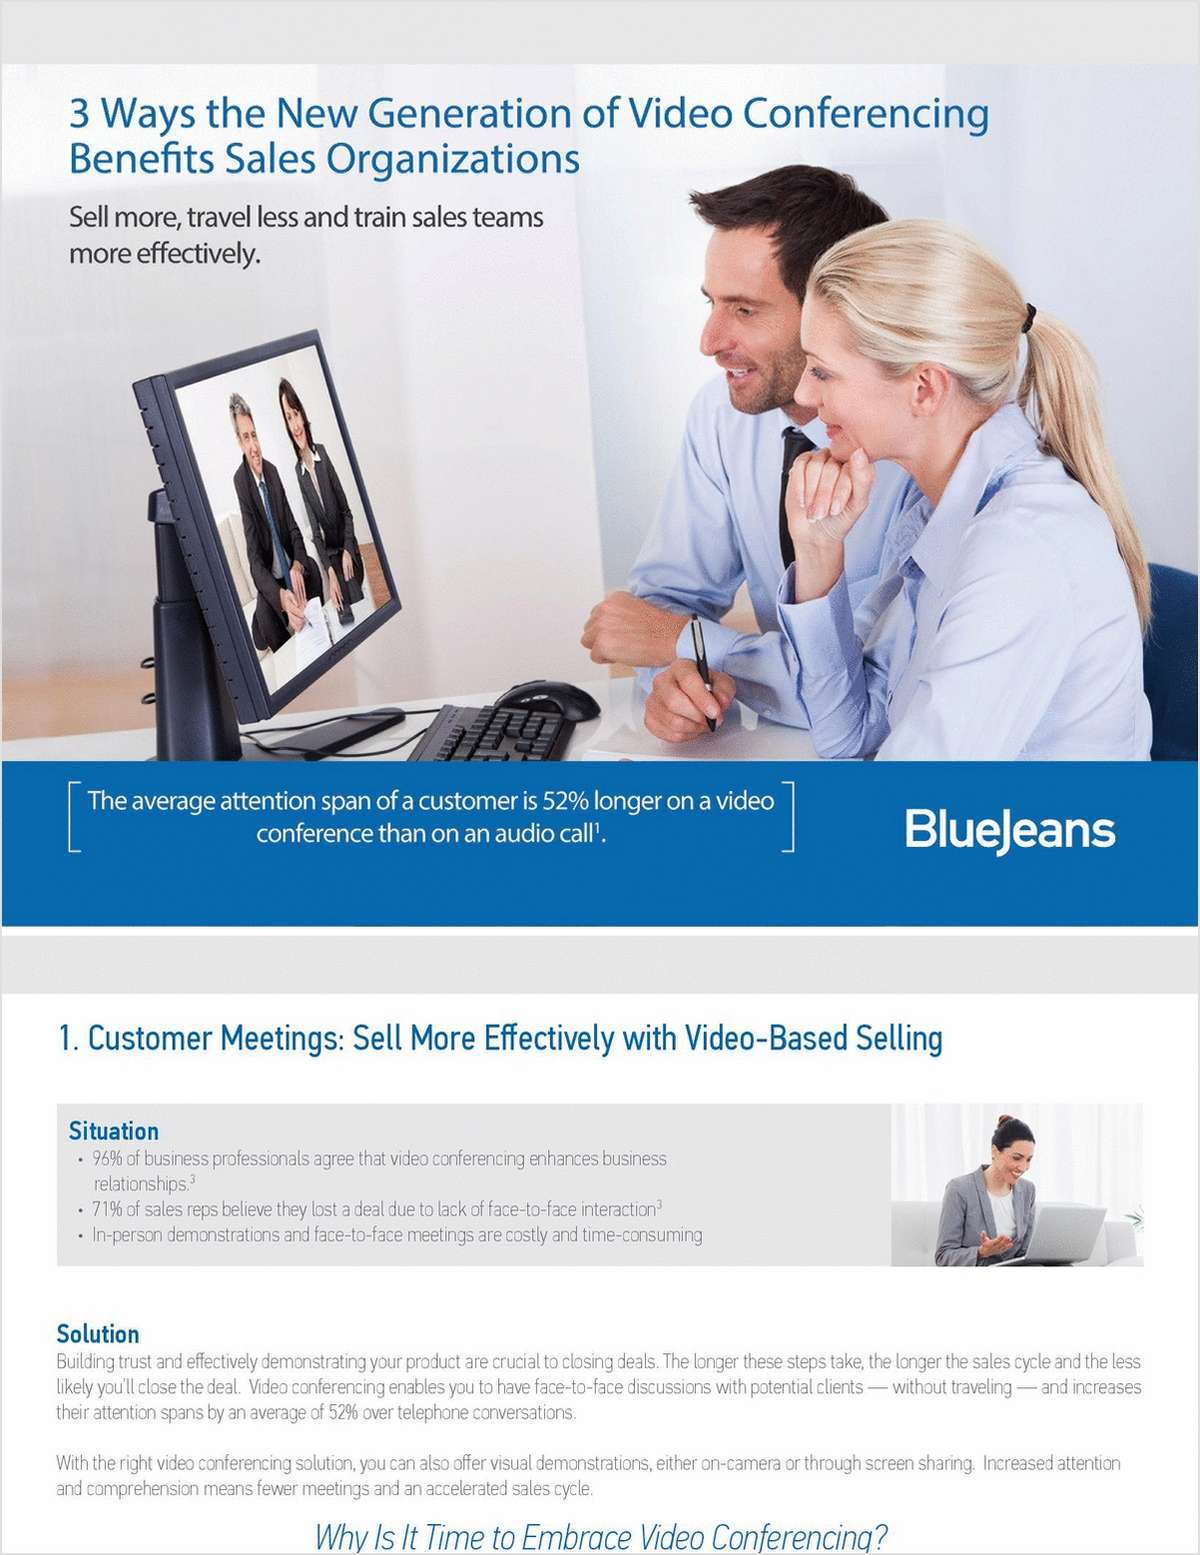 3 Ways the New Generation of Video Conferencing Benefits Sales Organizations